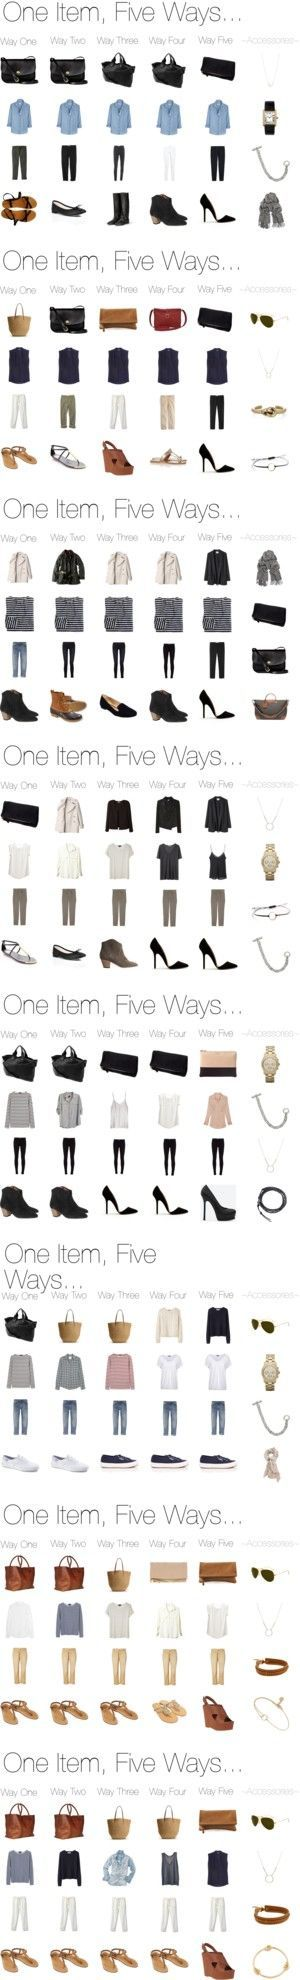 One Item, Five Ways. Casual, semi-formal, professional, business wear. Love all the stylish options!